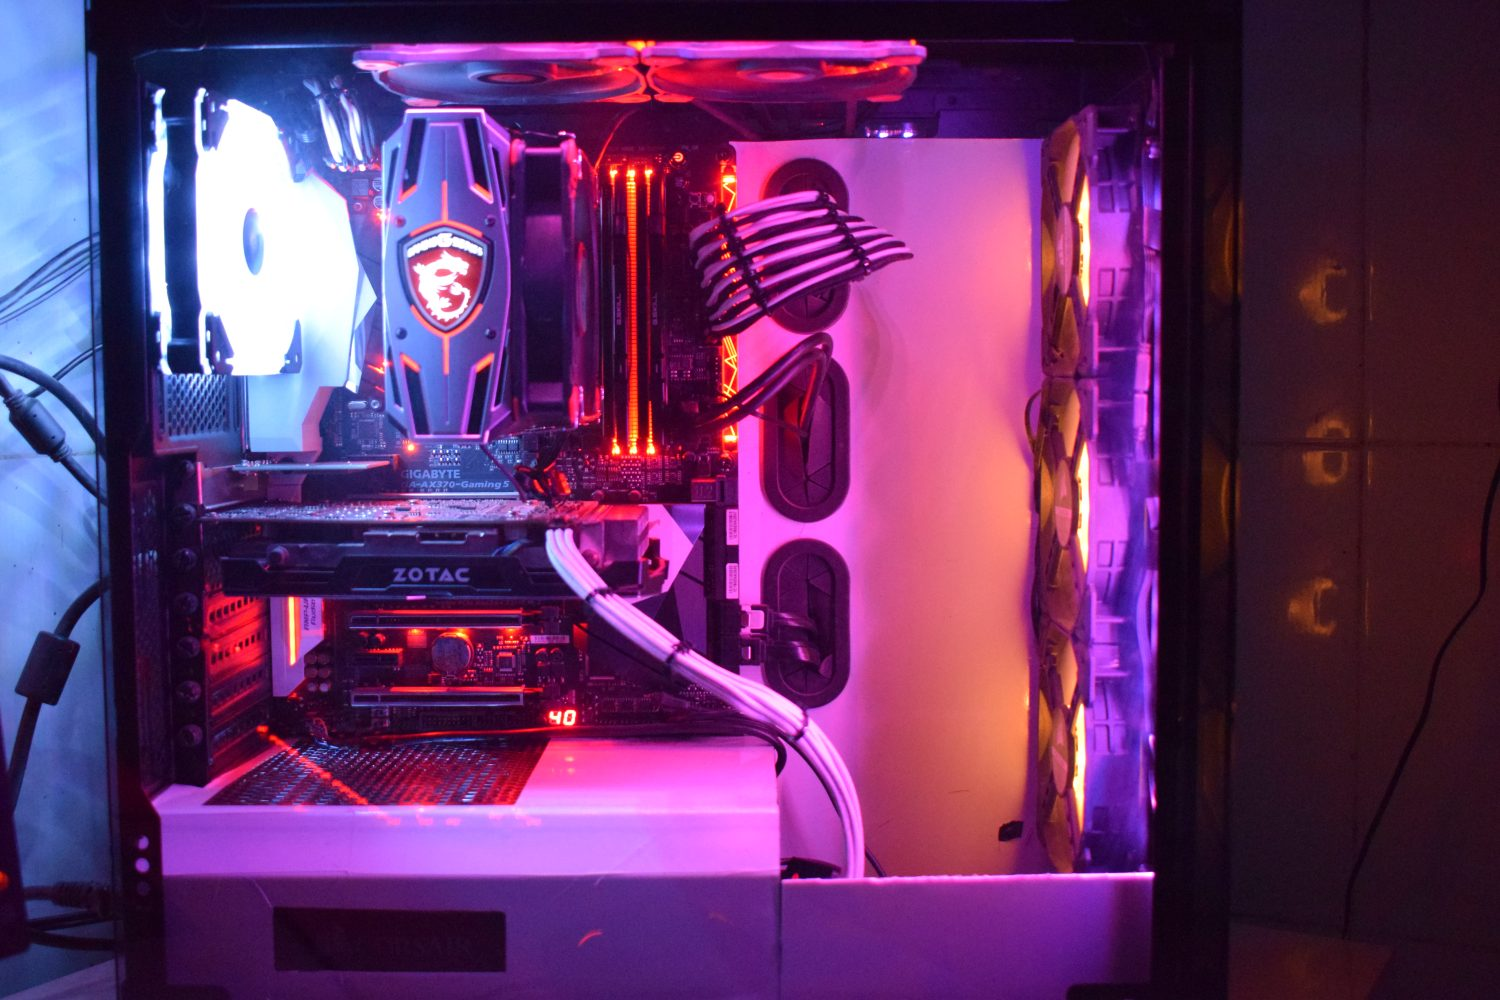 Best tempered glass PC cases – Xtremegaminerd